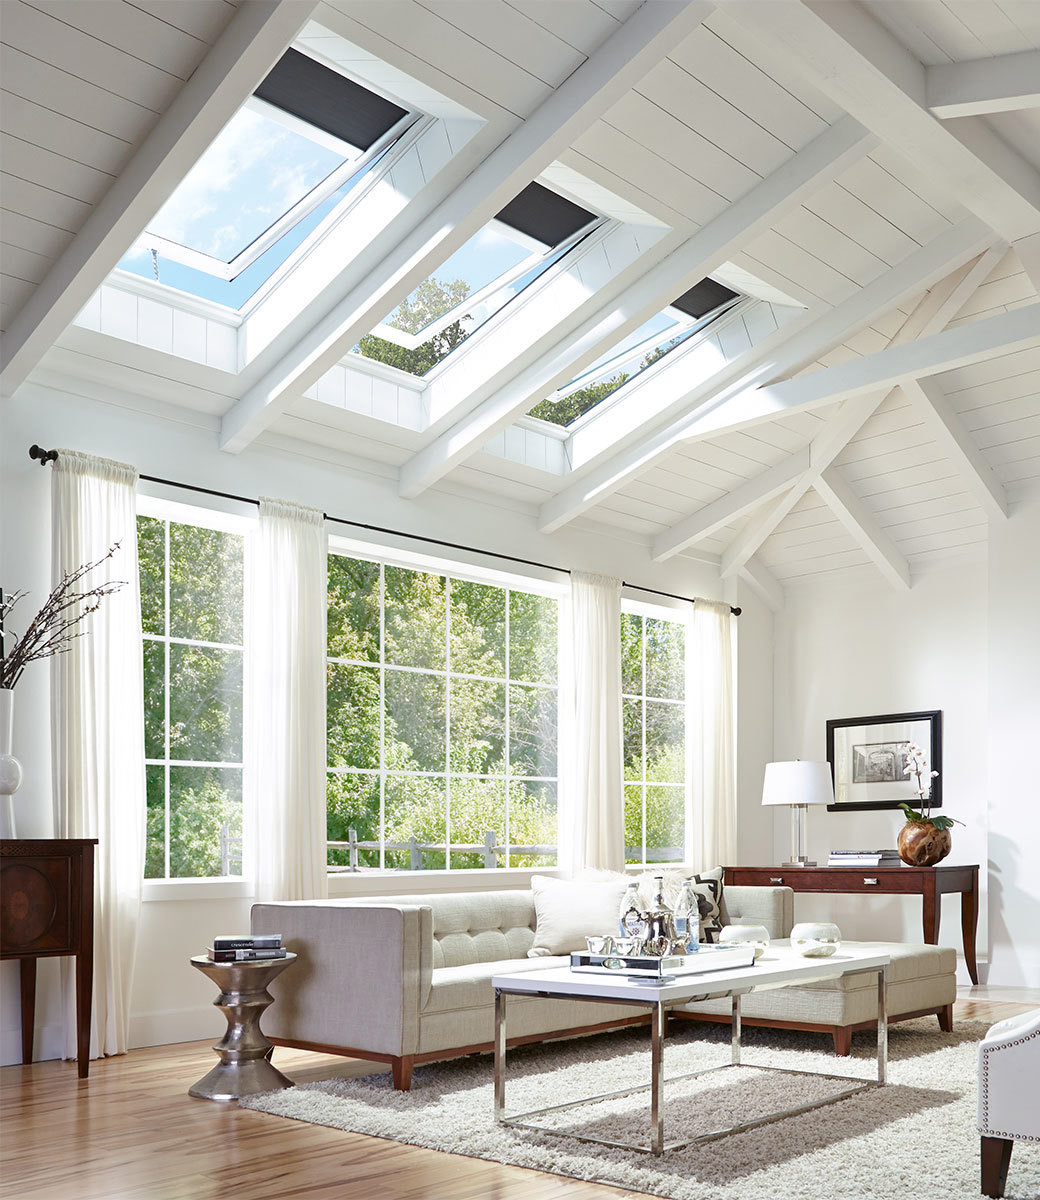 Skylight Tube A Homeowner S Guide To Skylights And Roof Windows Hunker